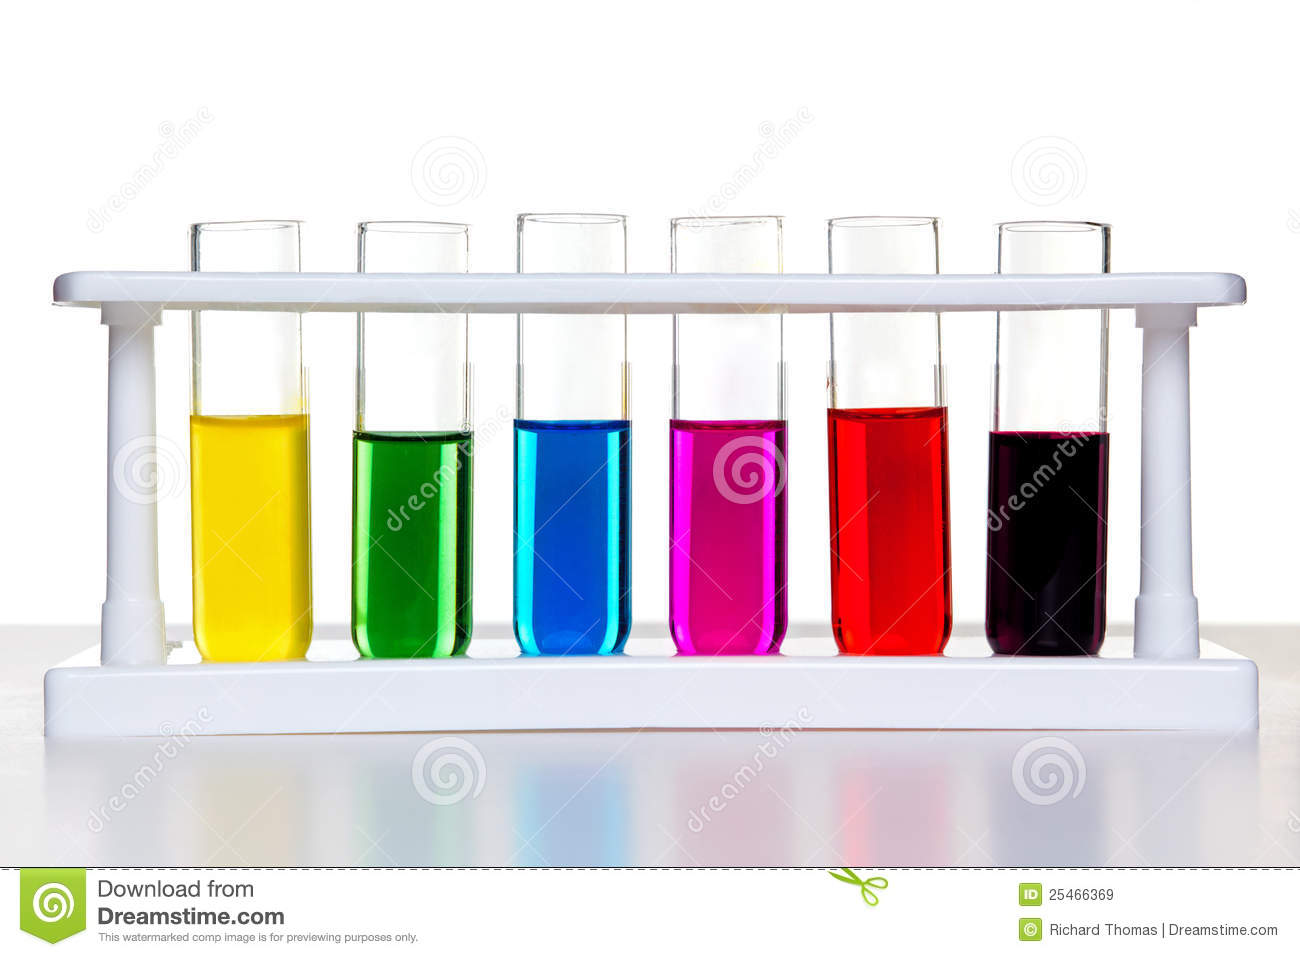 Photo of test tubes full of chemicals in a rack on a white background.